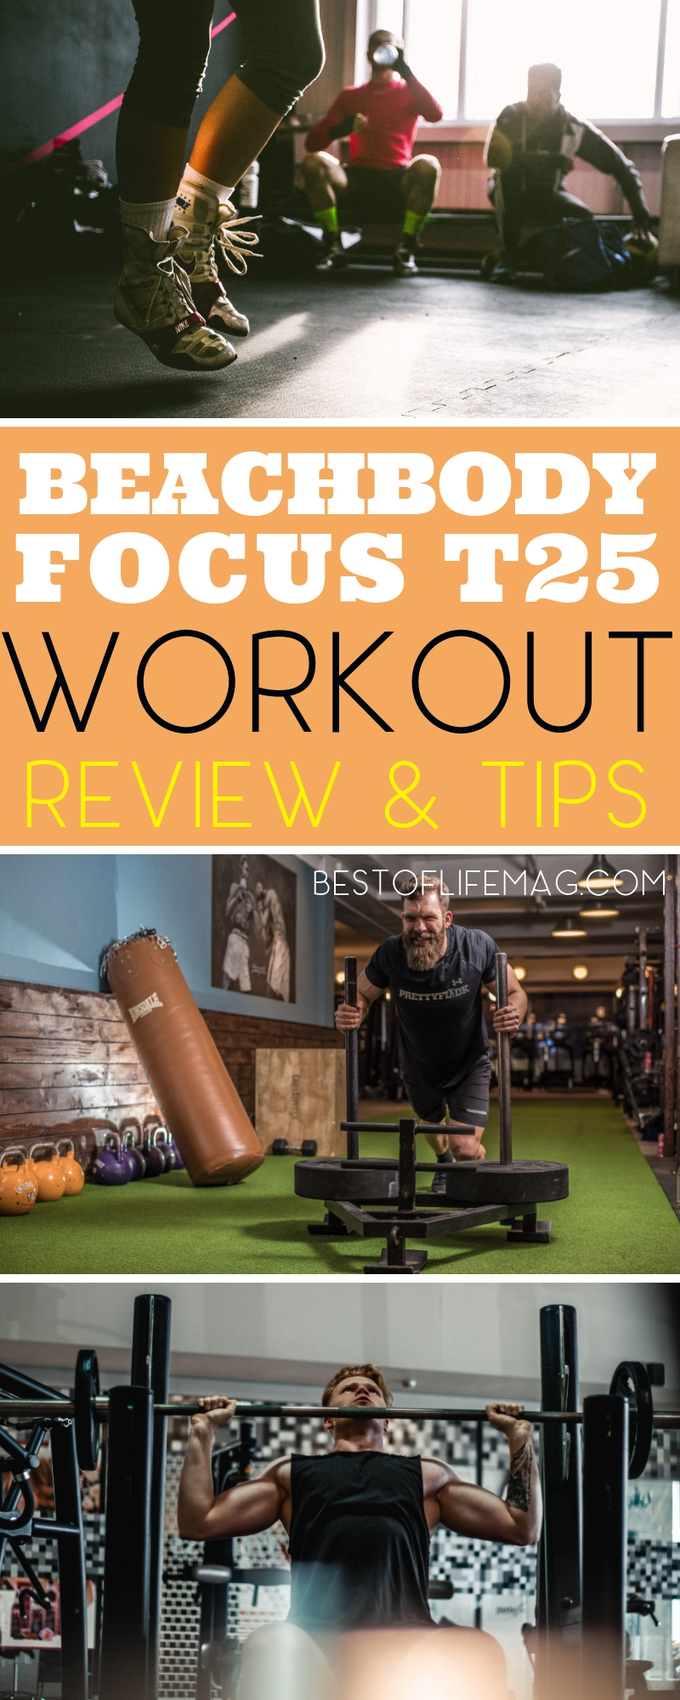 Are you considering the Focus T25 Workout? With these Focus T25 Review and Tips, you can determine if this workout will be right for you and maximize results. Shaun T Workouts | Beachbody Workouts | Beachbody Exercise Programs | Workout Schedules | At Home Workouts #beachbody